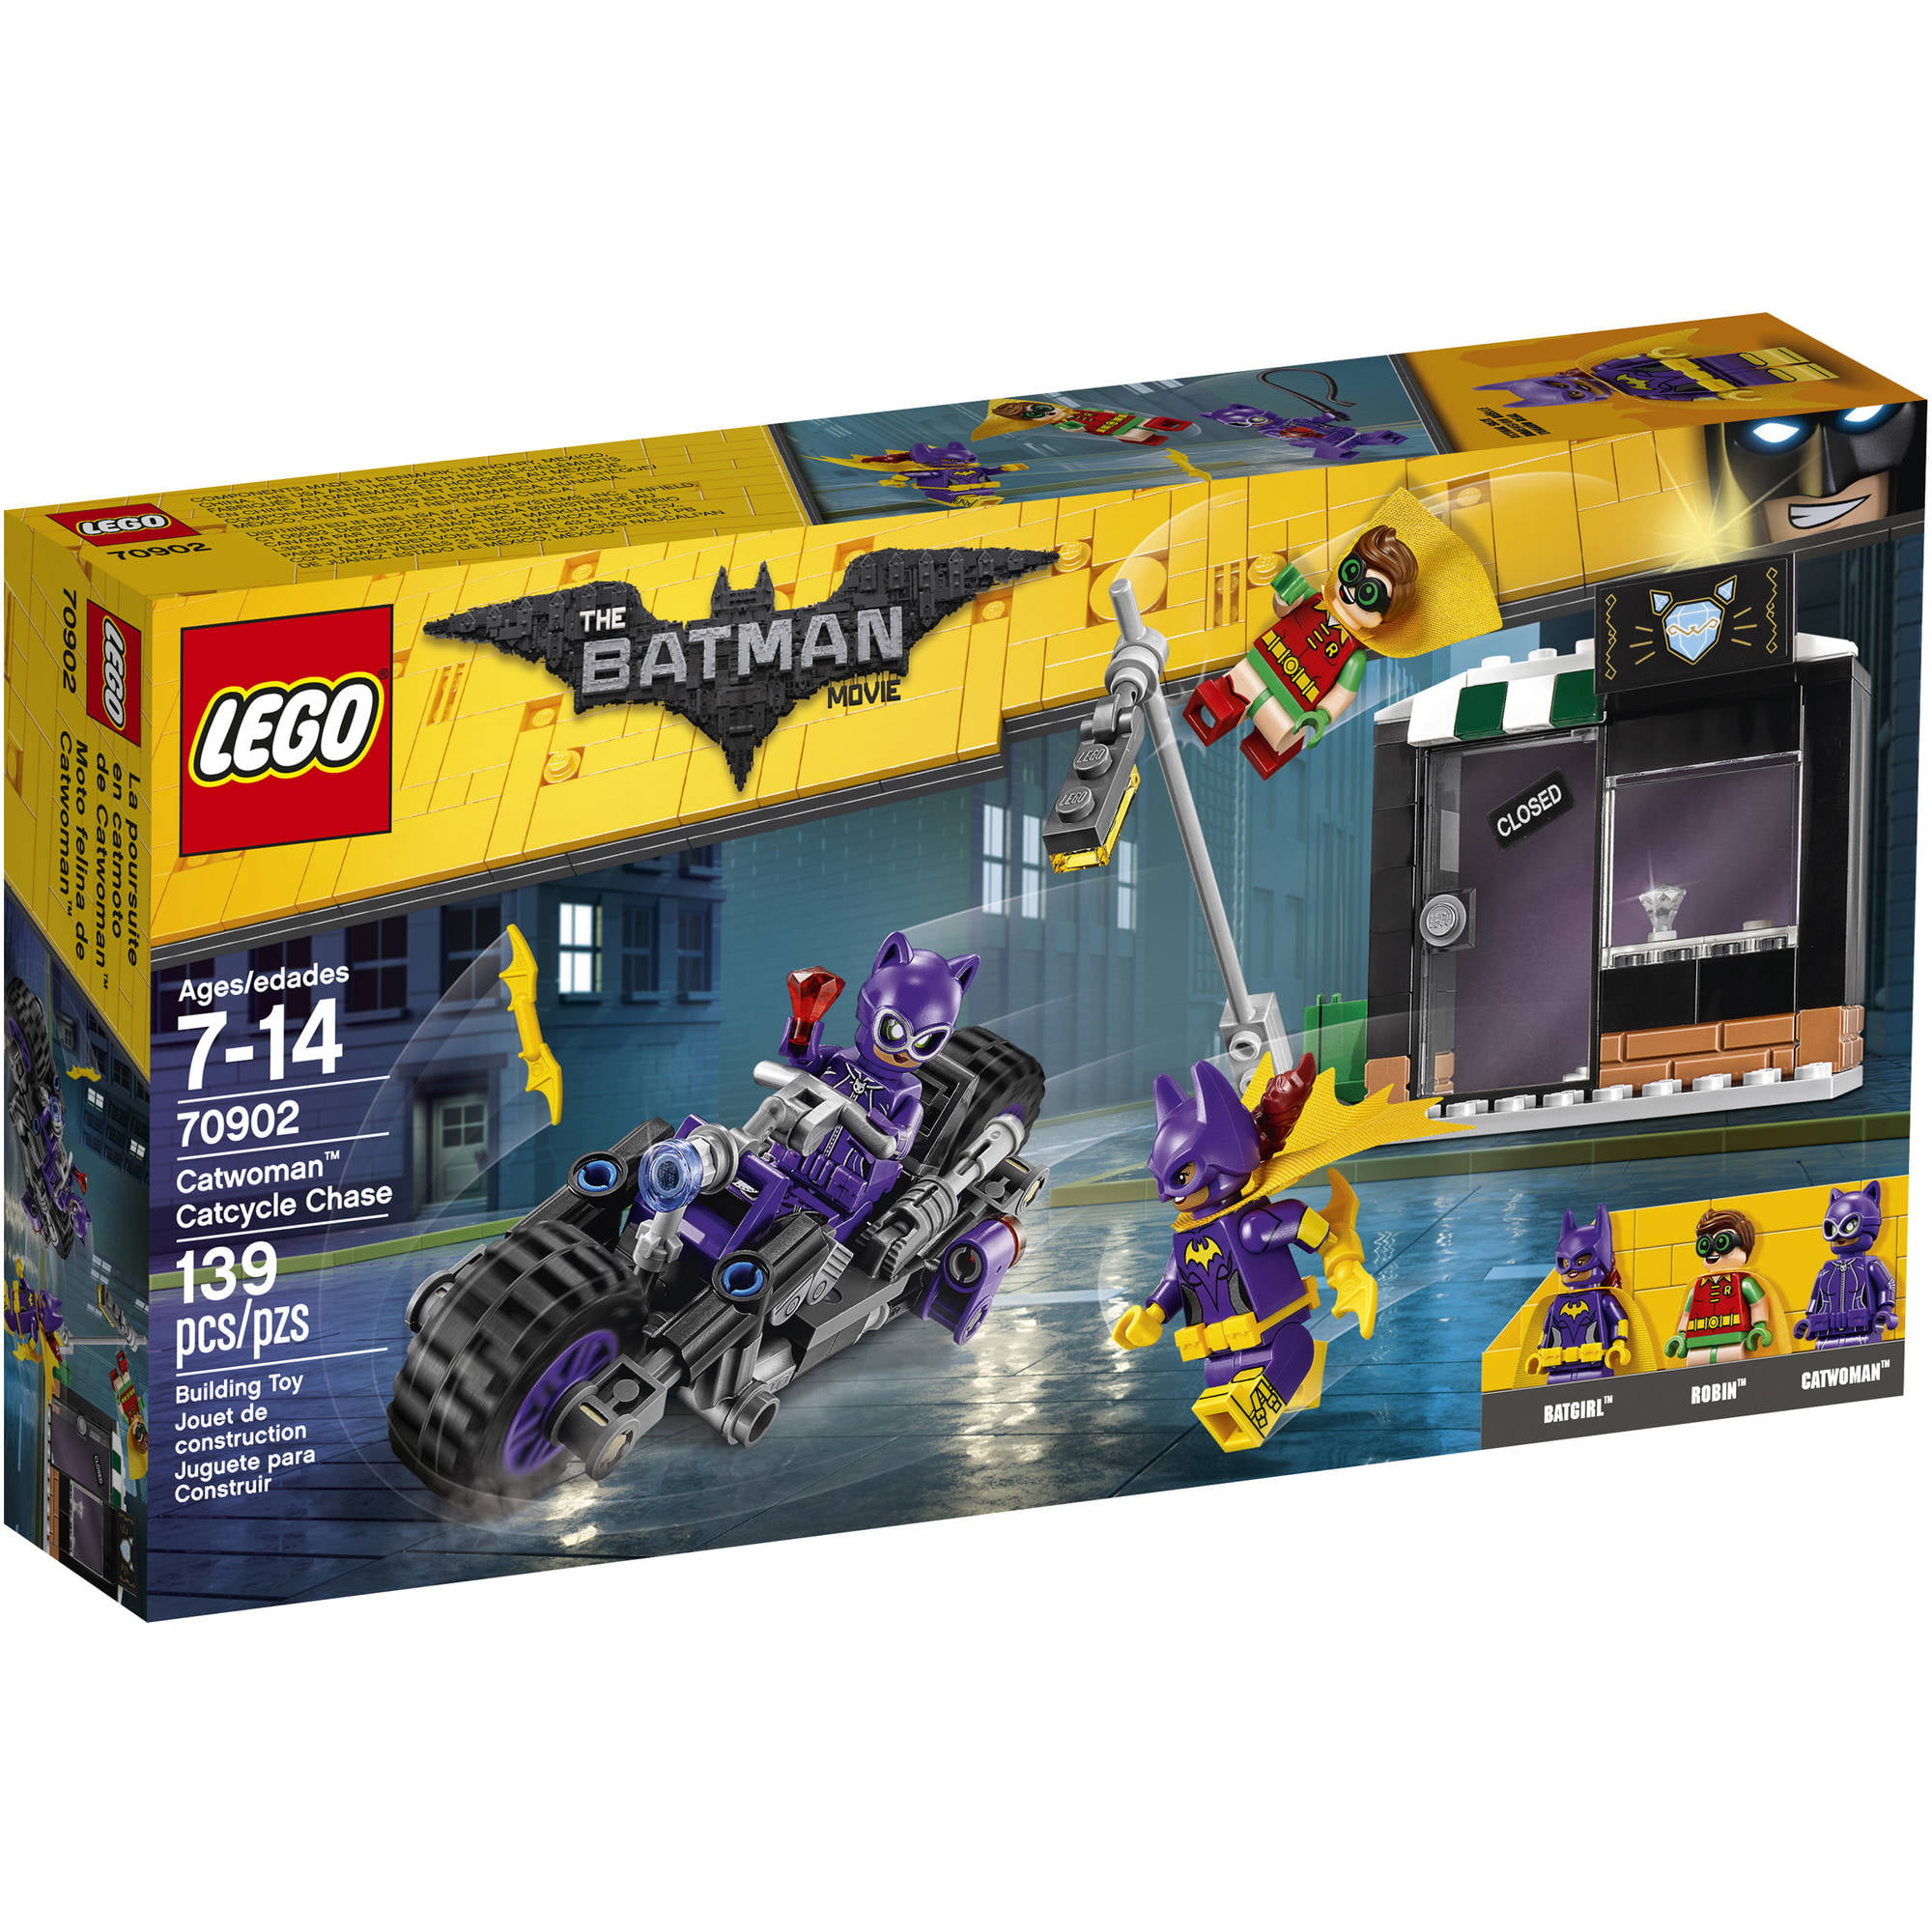 The Lego Batman Movie Catwoman Catcycle Chase (70902) by LEGO Systems Inc